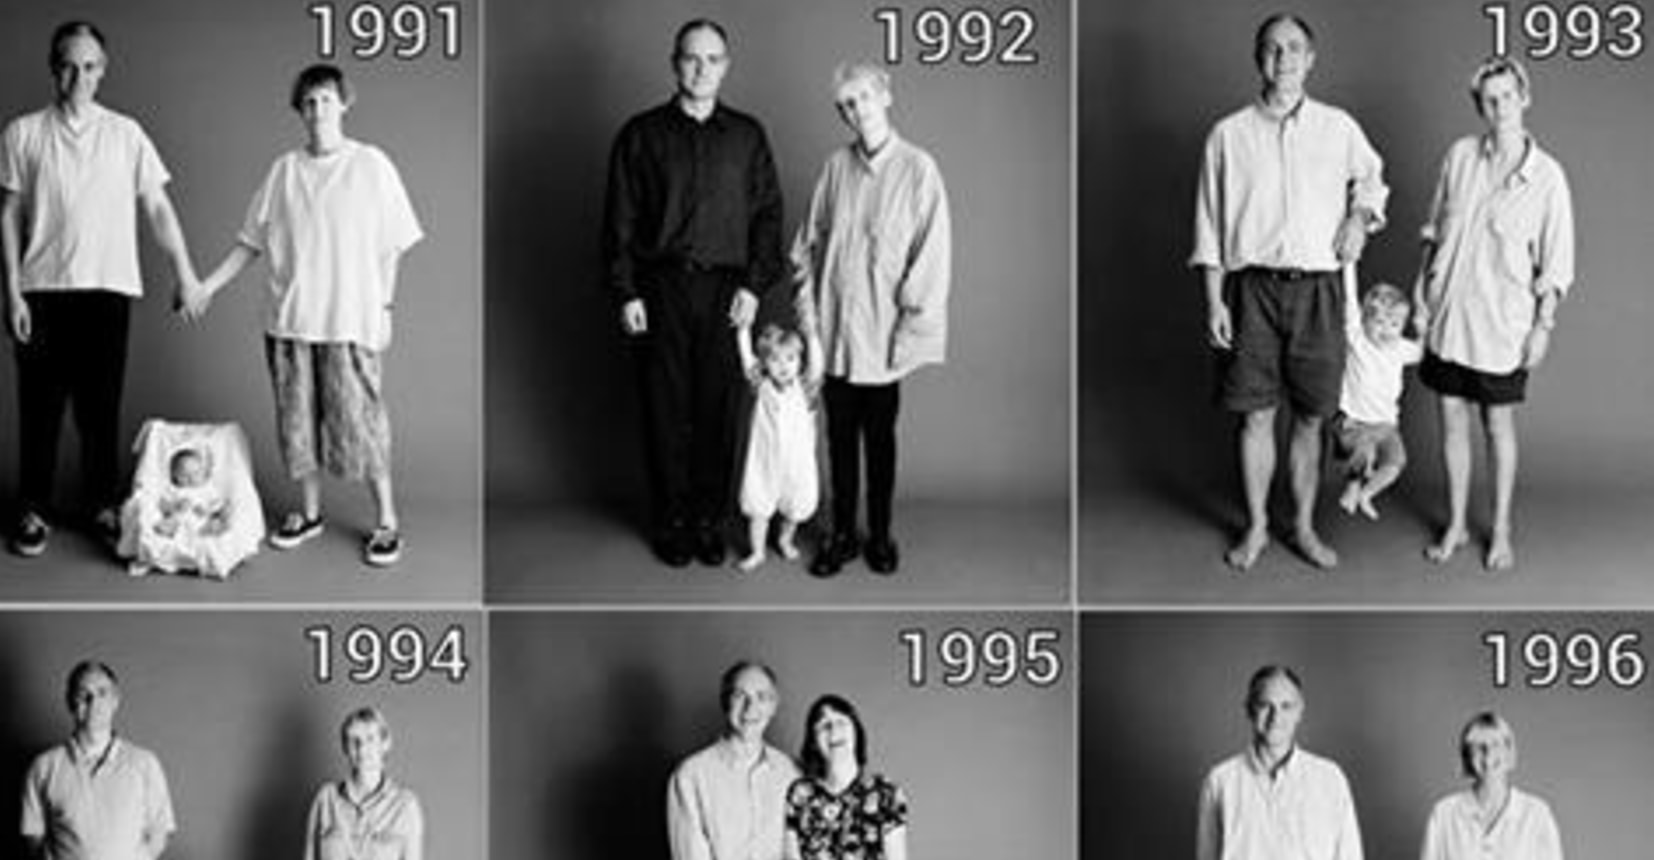 For 25 Years, This Family Took The Same Photo. The Pictures Reveal Their Stunning Transformations